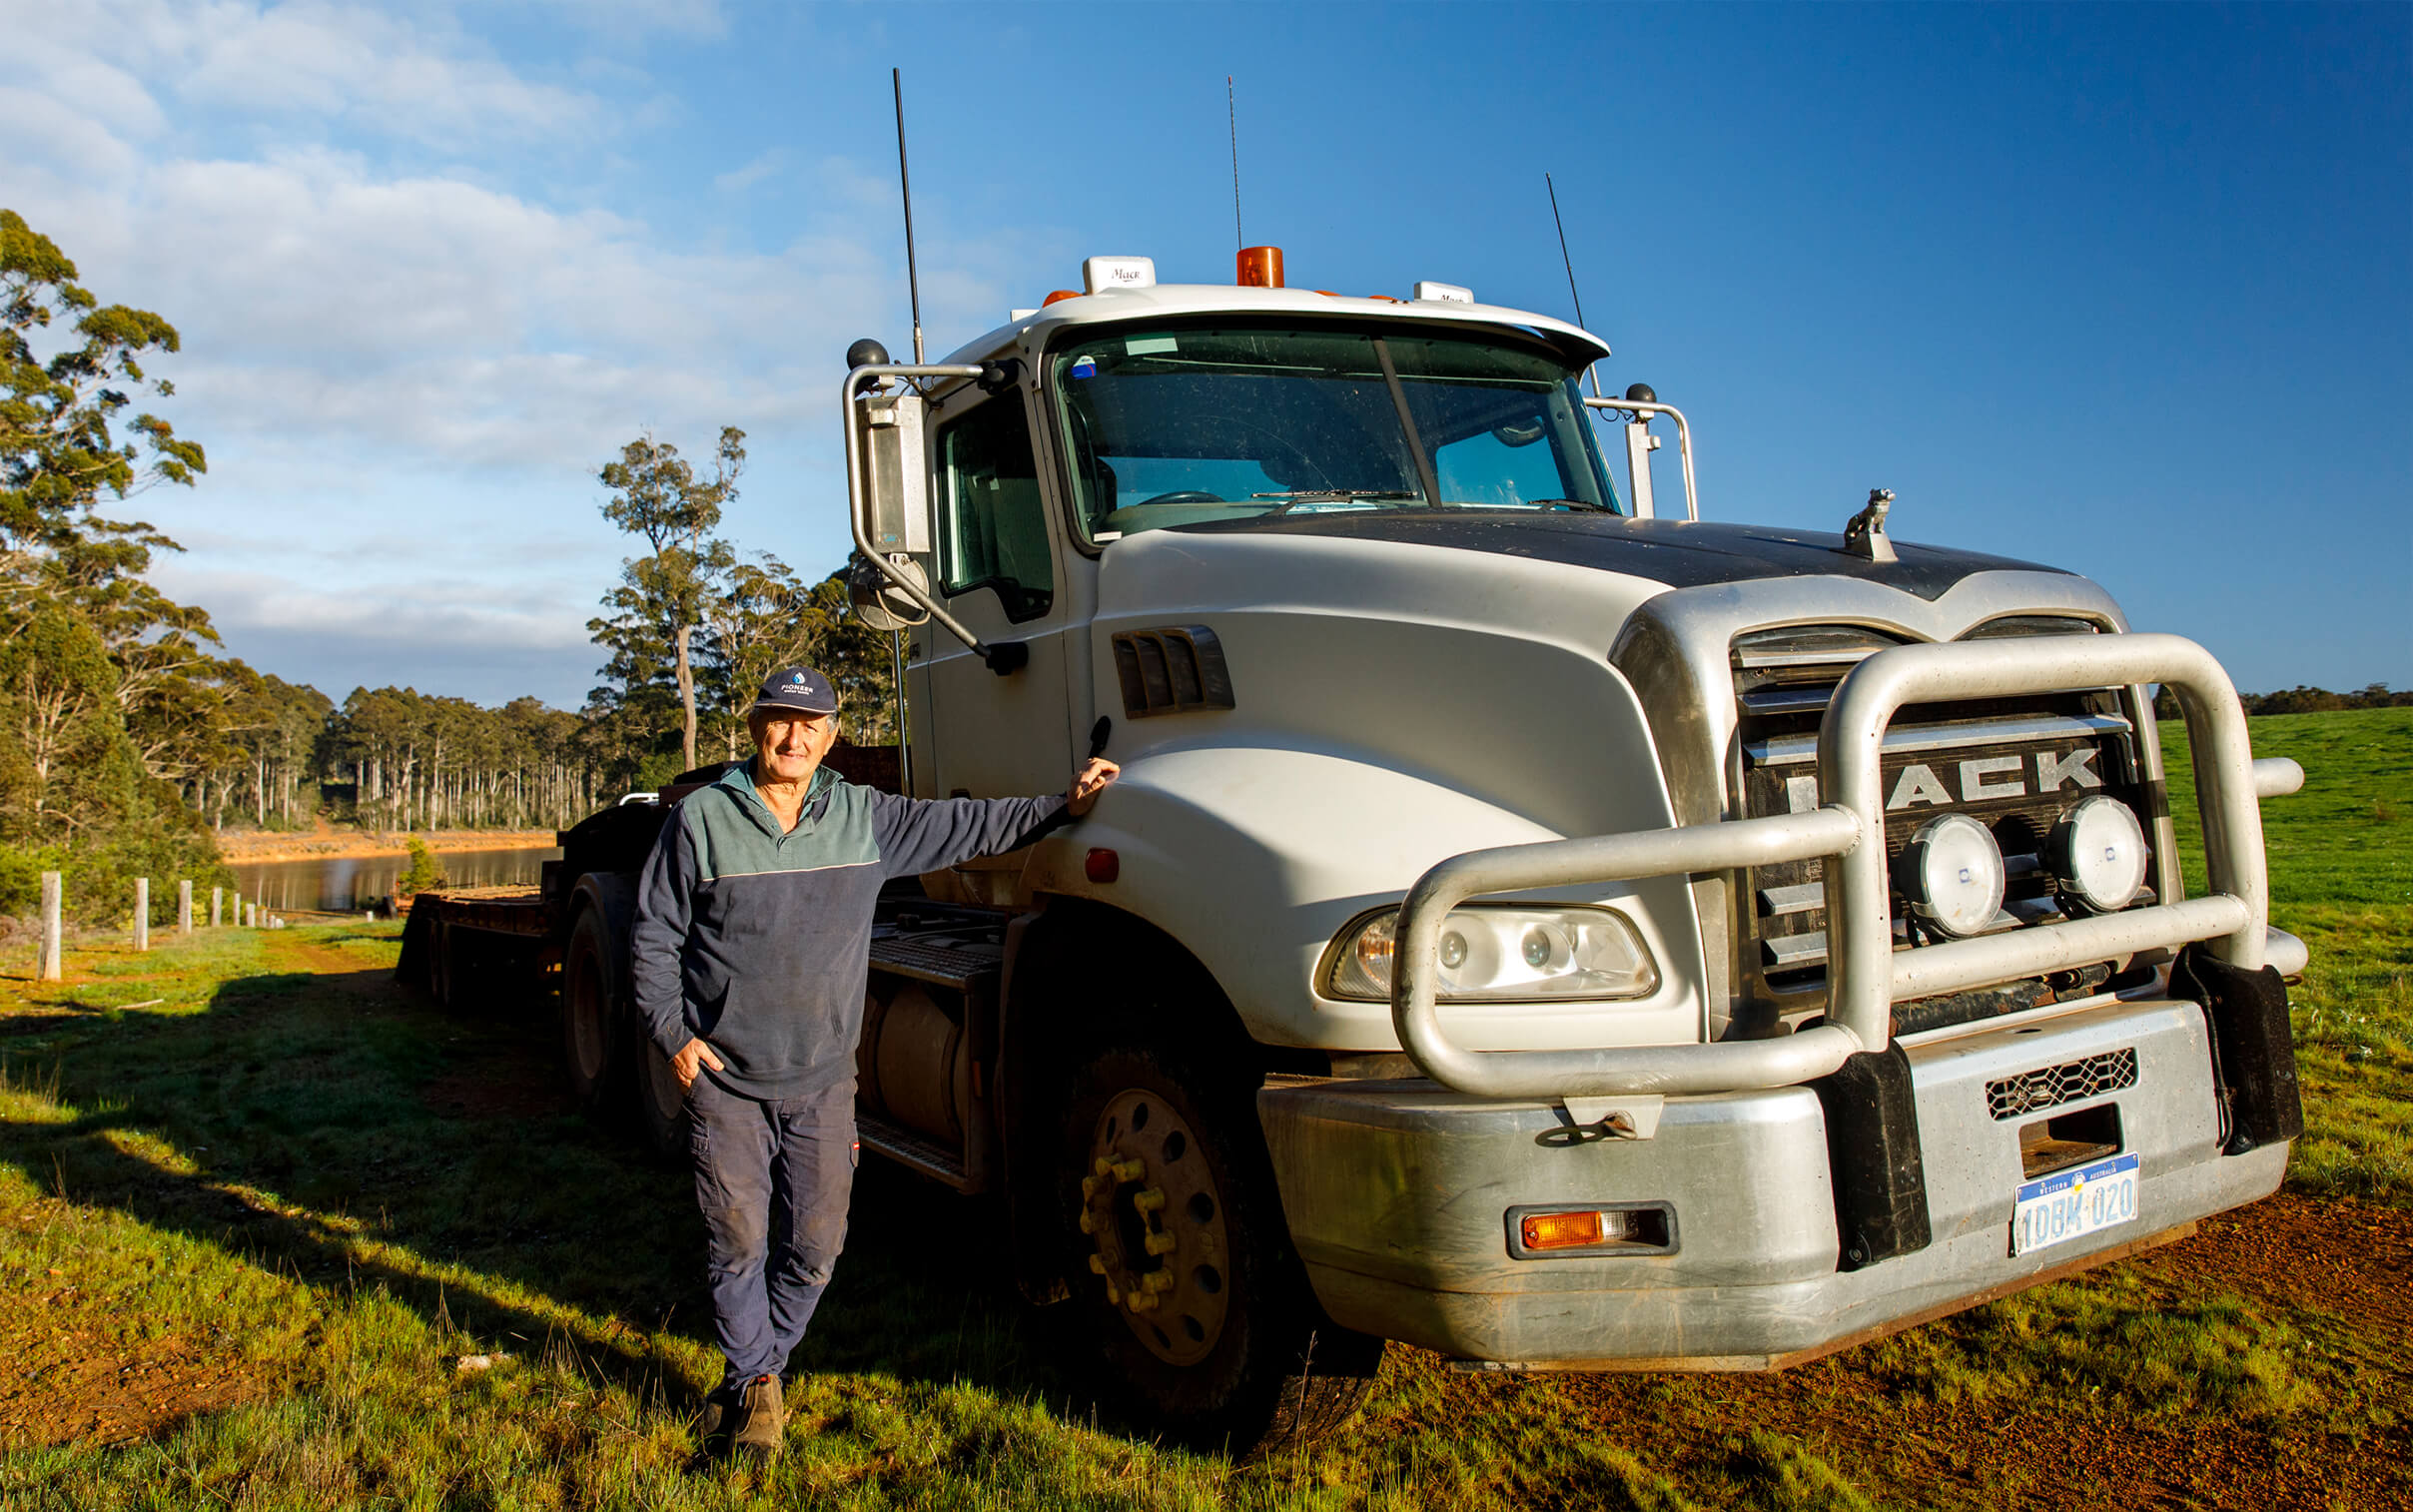 Kim Gandy leaning one arm against his truck on the Diamond Tree farm